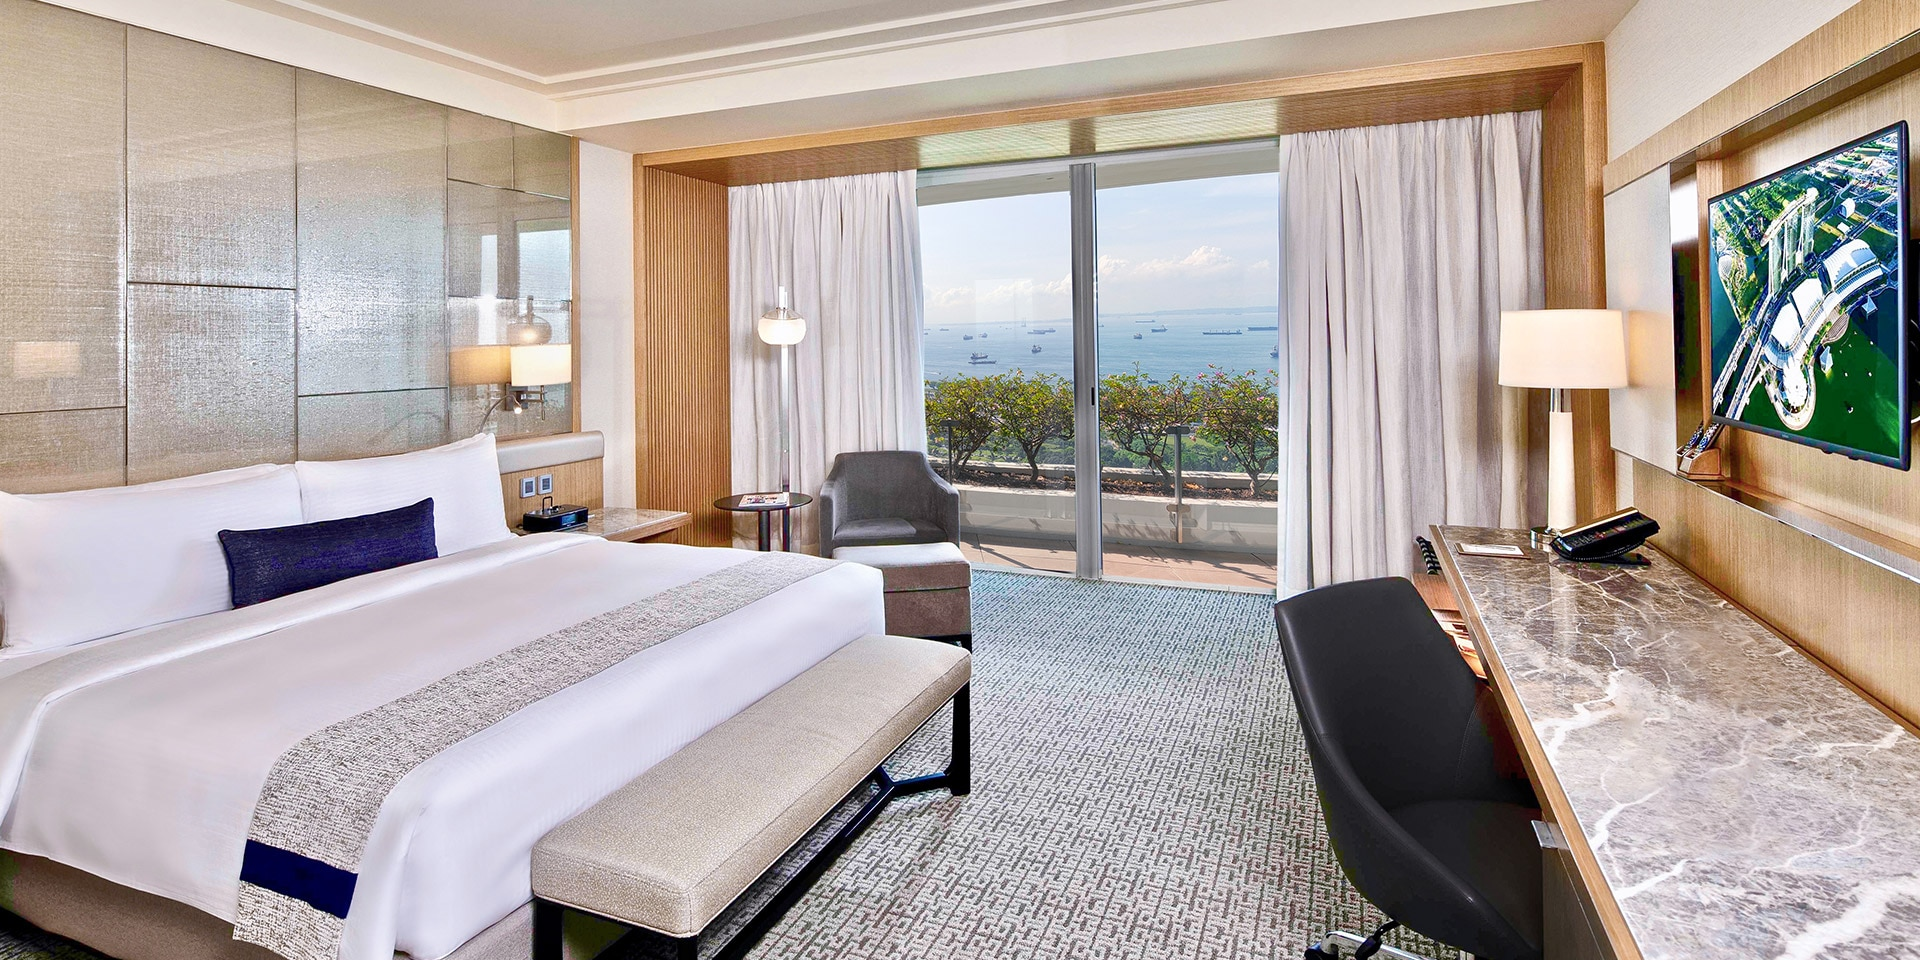 Premier Room in Marina Bay Sands Singapore Hotel